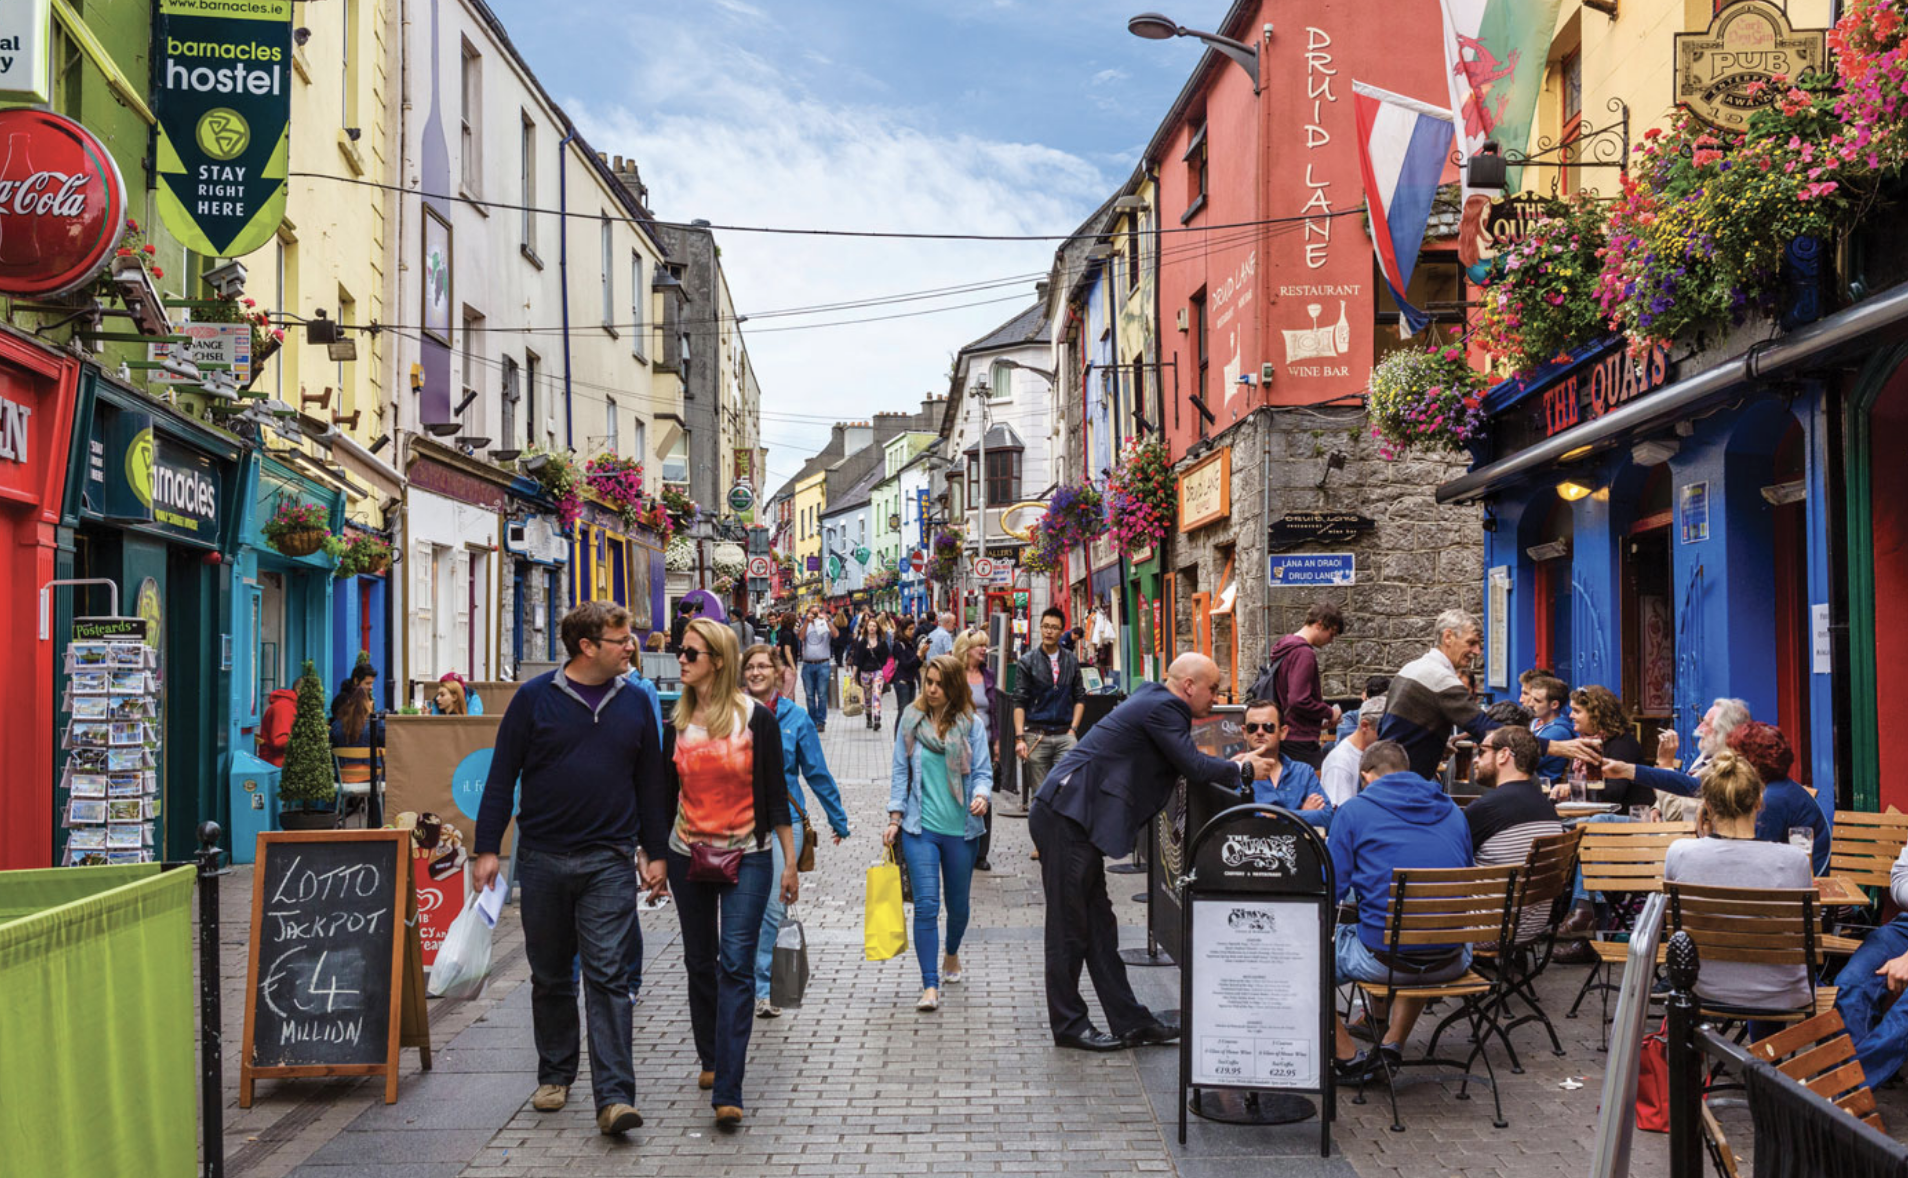 September 14: Explore more of Galway - Use this last day in Galway to walk the streets, drive the Connemara one last time or go on a castle hunt along the Wild Atlantic Way!